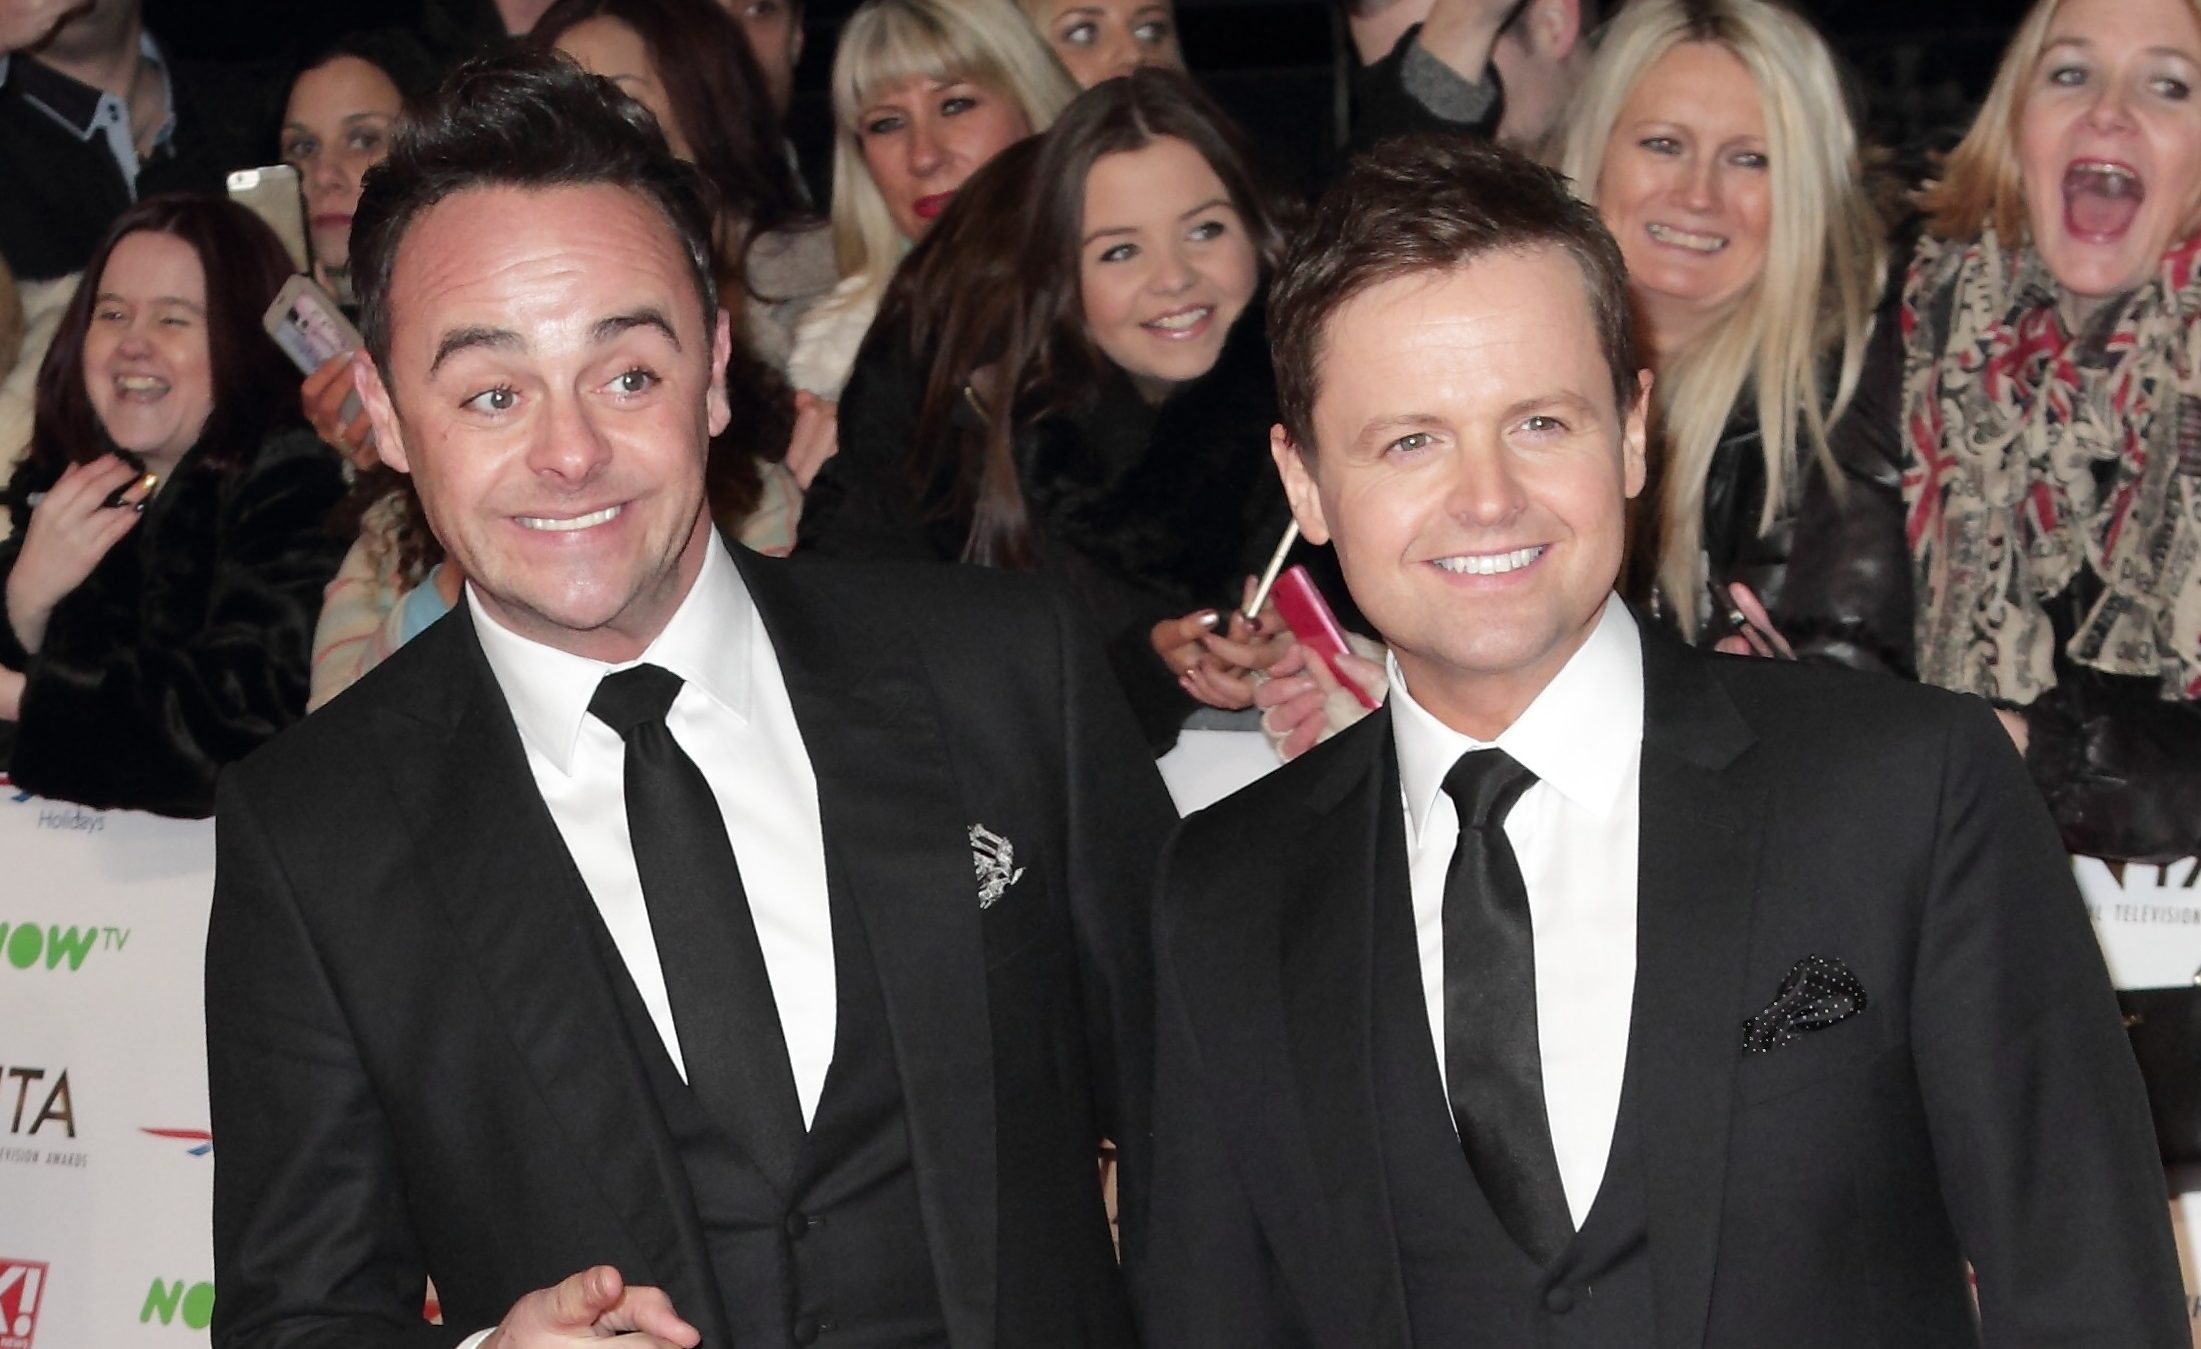 Ant McPartlin returns to work on Britain's Got Talent